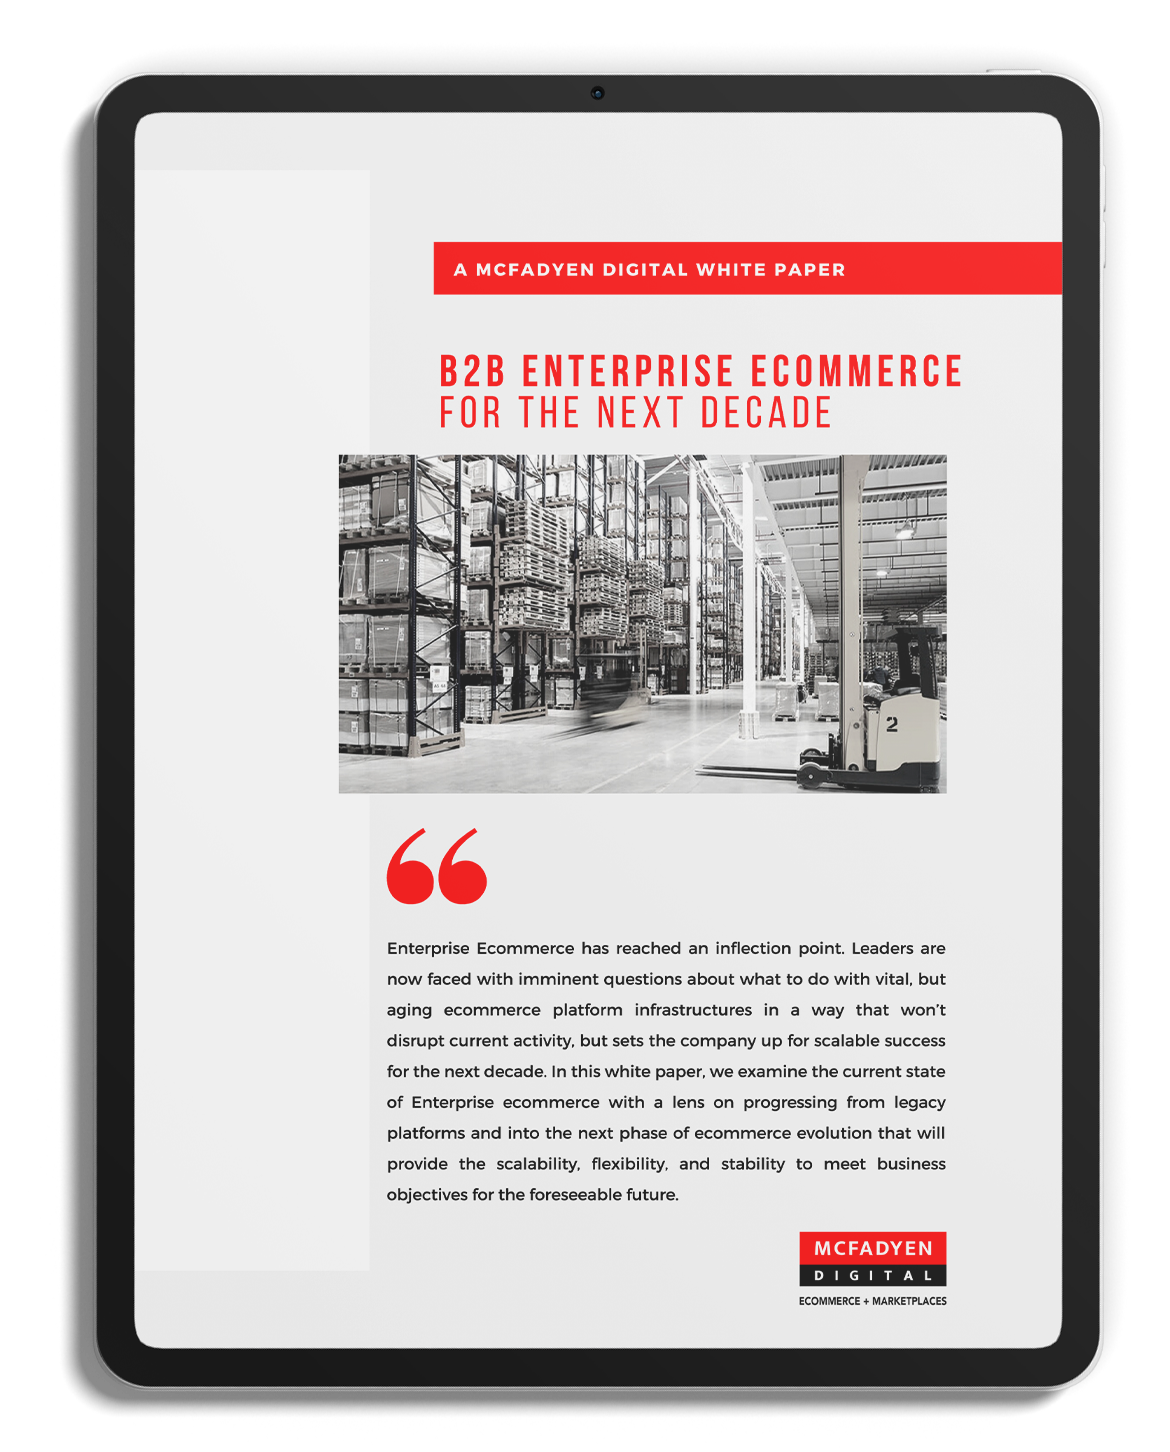 B2B Ecommerce for the Next Decade